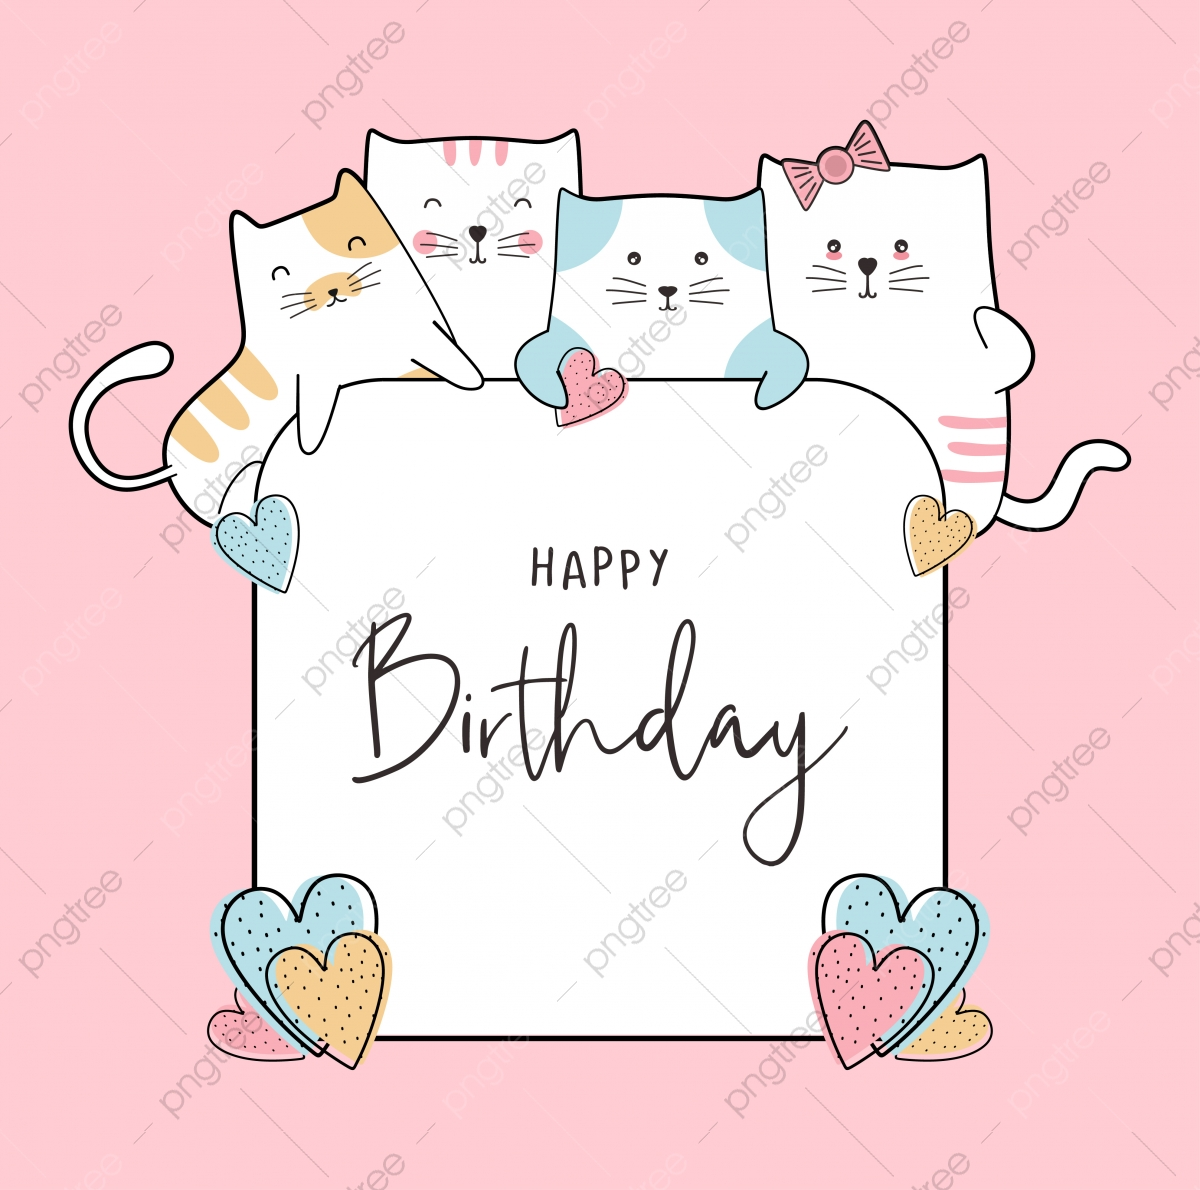 birthday celebration card design with cute baby cats